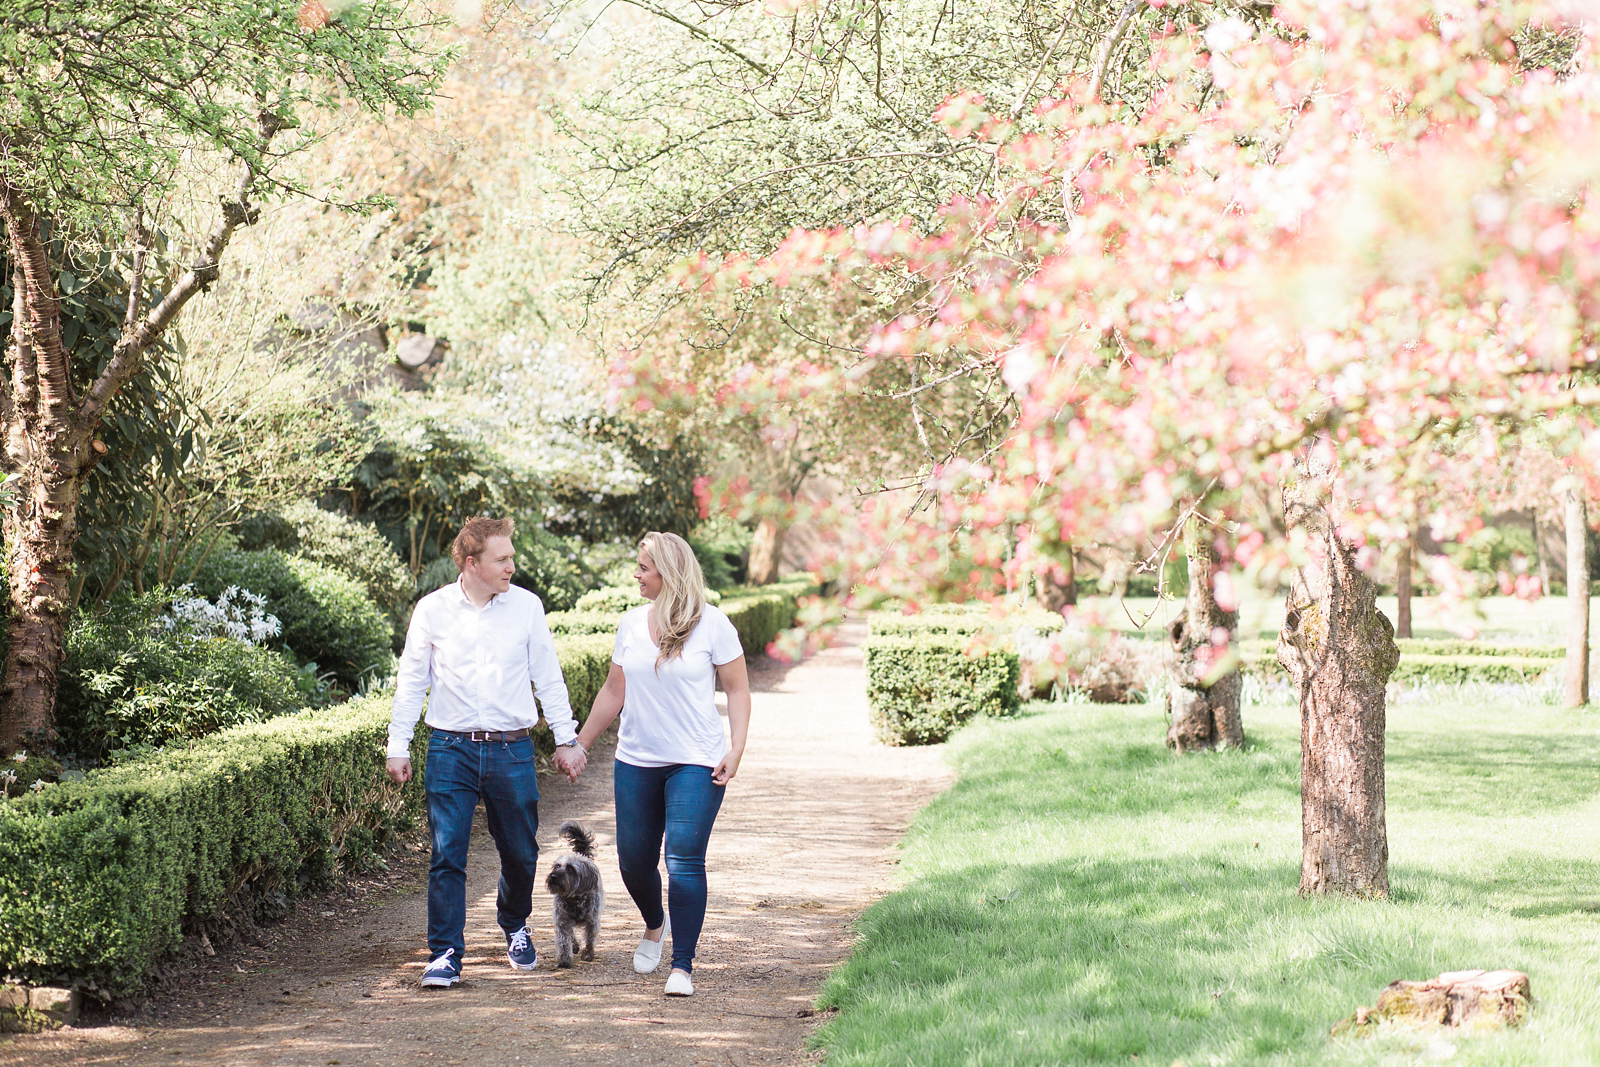 Engagement Shoot Spring Blossom Fine Art Wedding Photography couple walking with their dog, candid